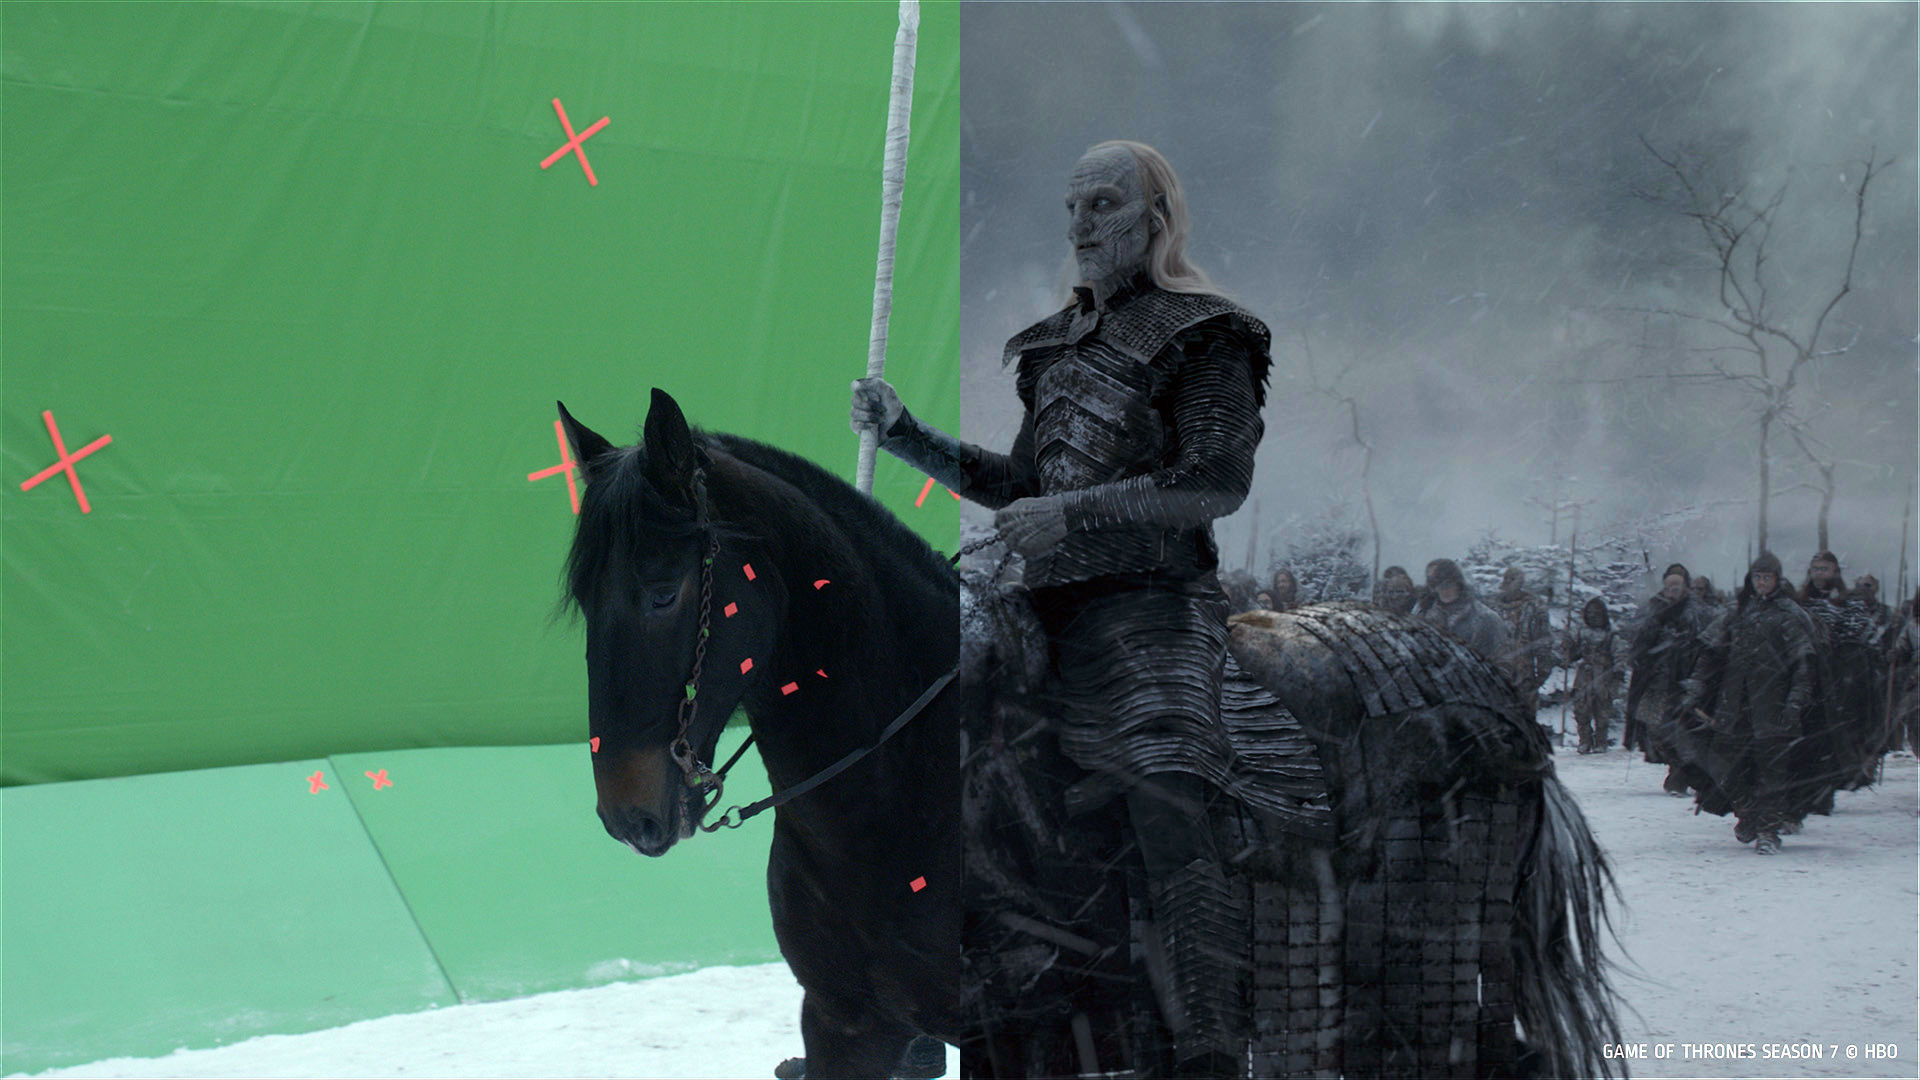 Kỹ xảo VFX trong phim Game of Thrones